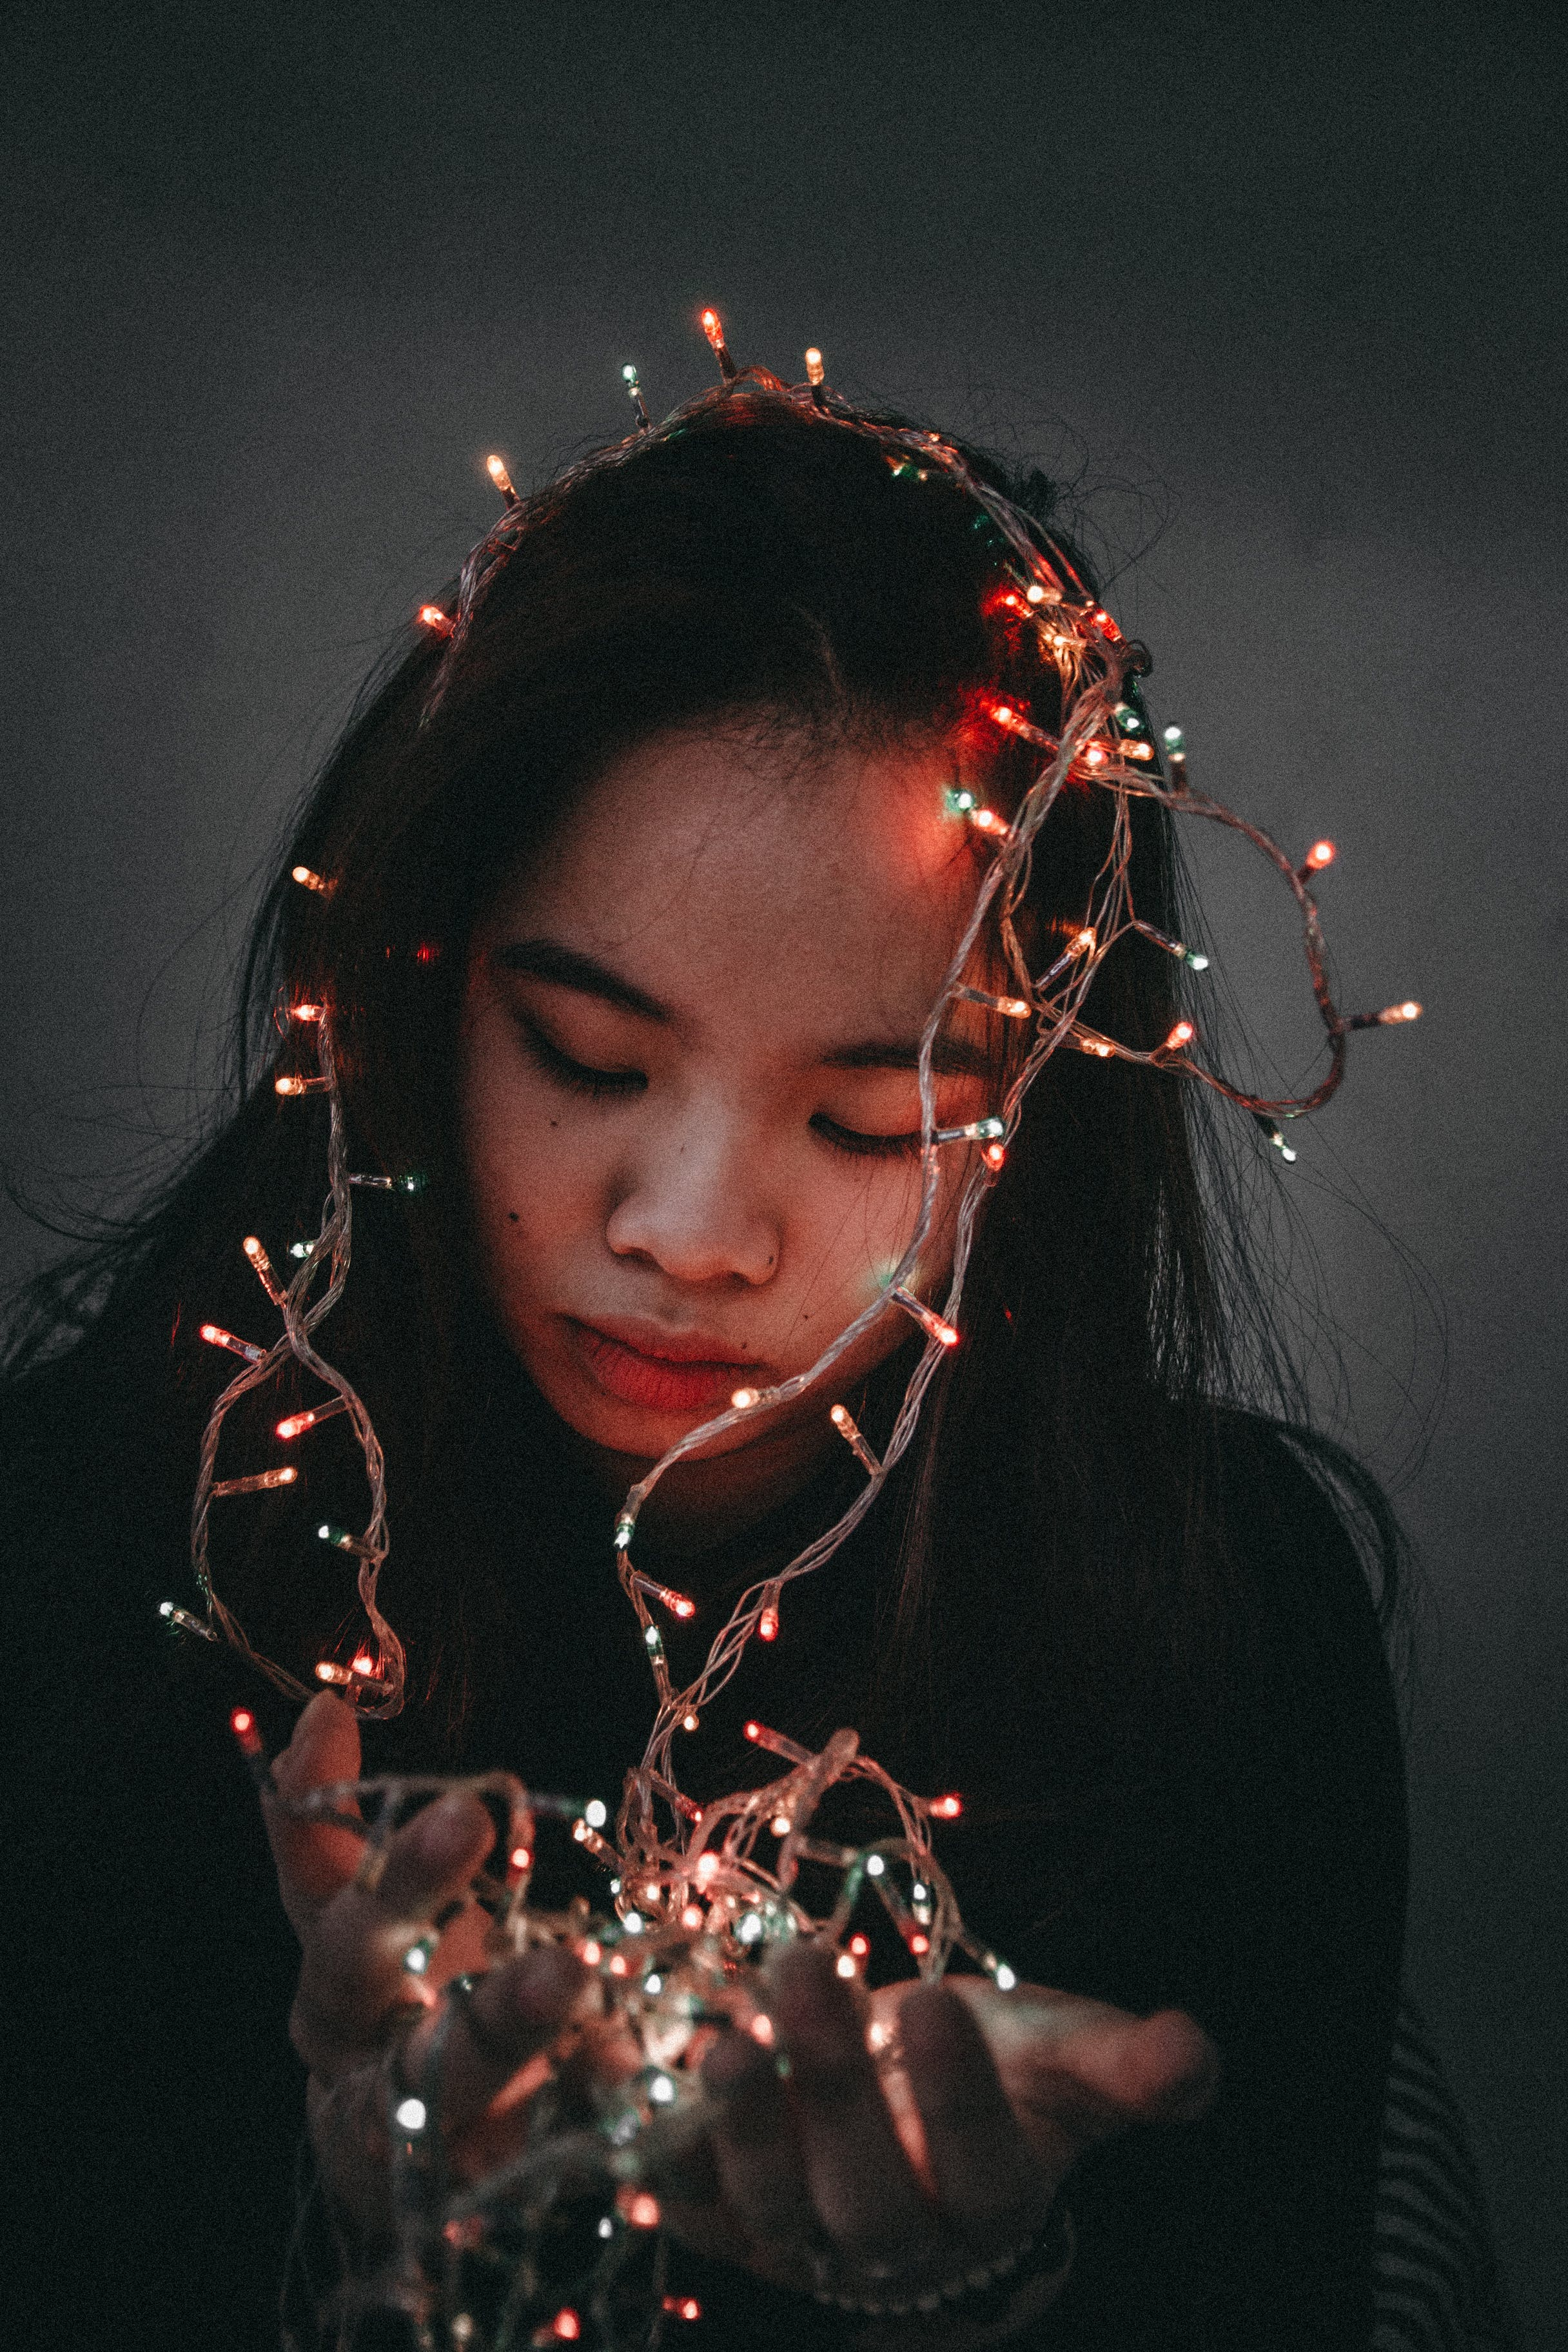 Woman Wears Black Long-sleeved Shirt Hold String Lights